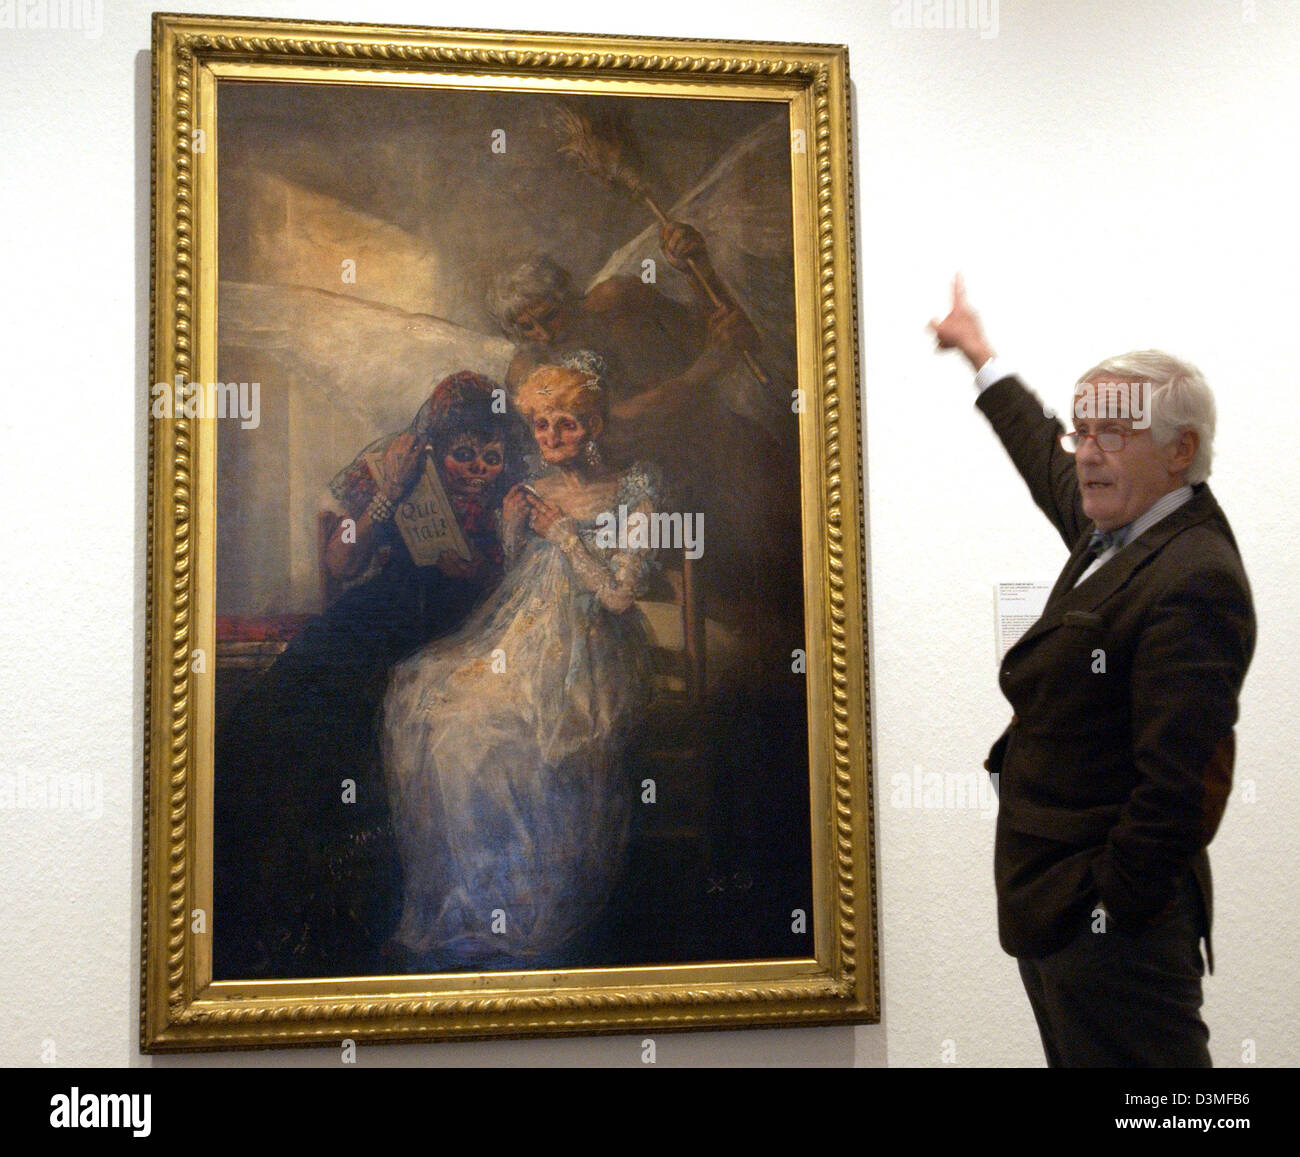 Peter Raue, chairman of the friends of the National Gallery association, points at the painting 'The hours (aged Stock Photo